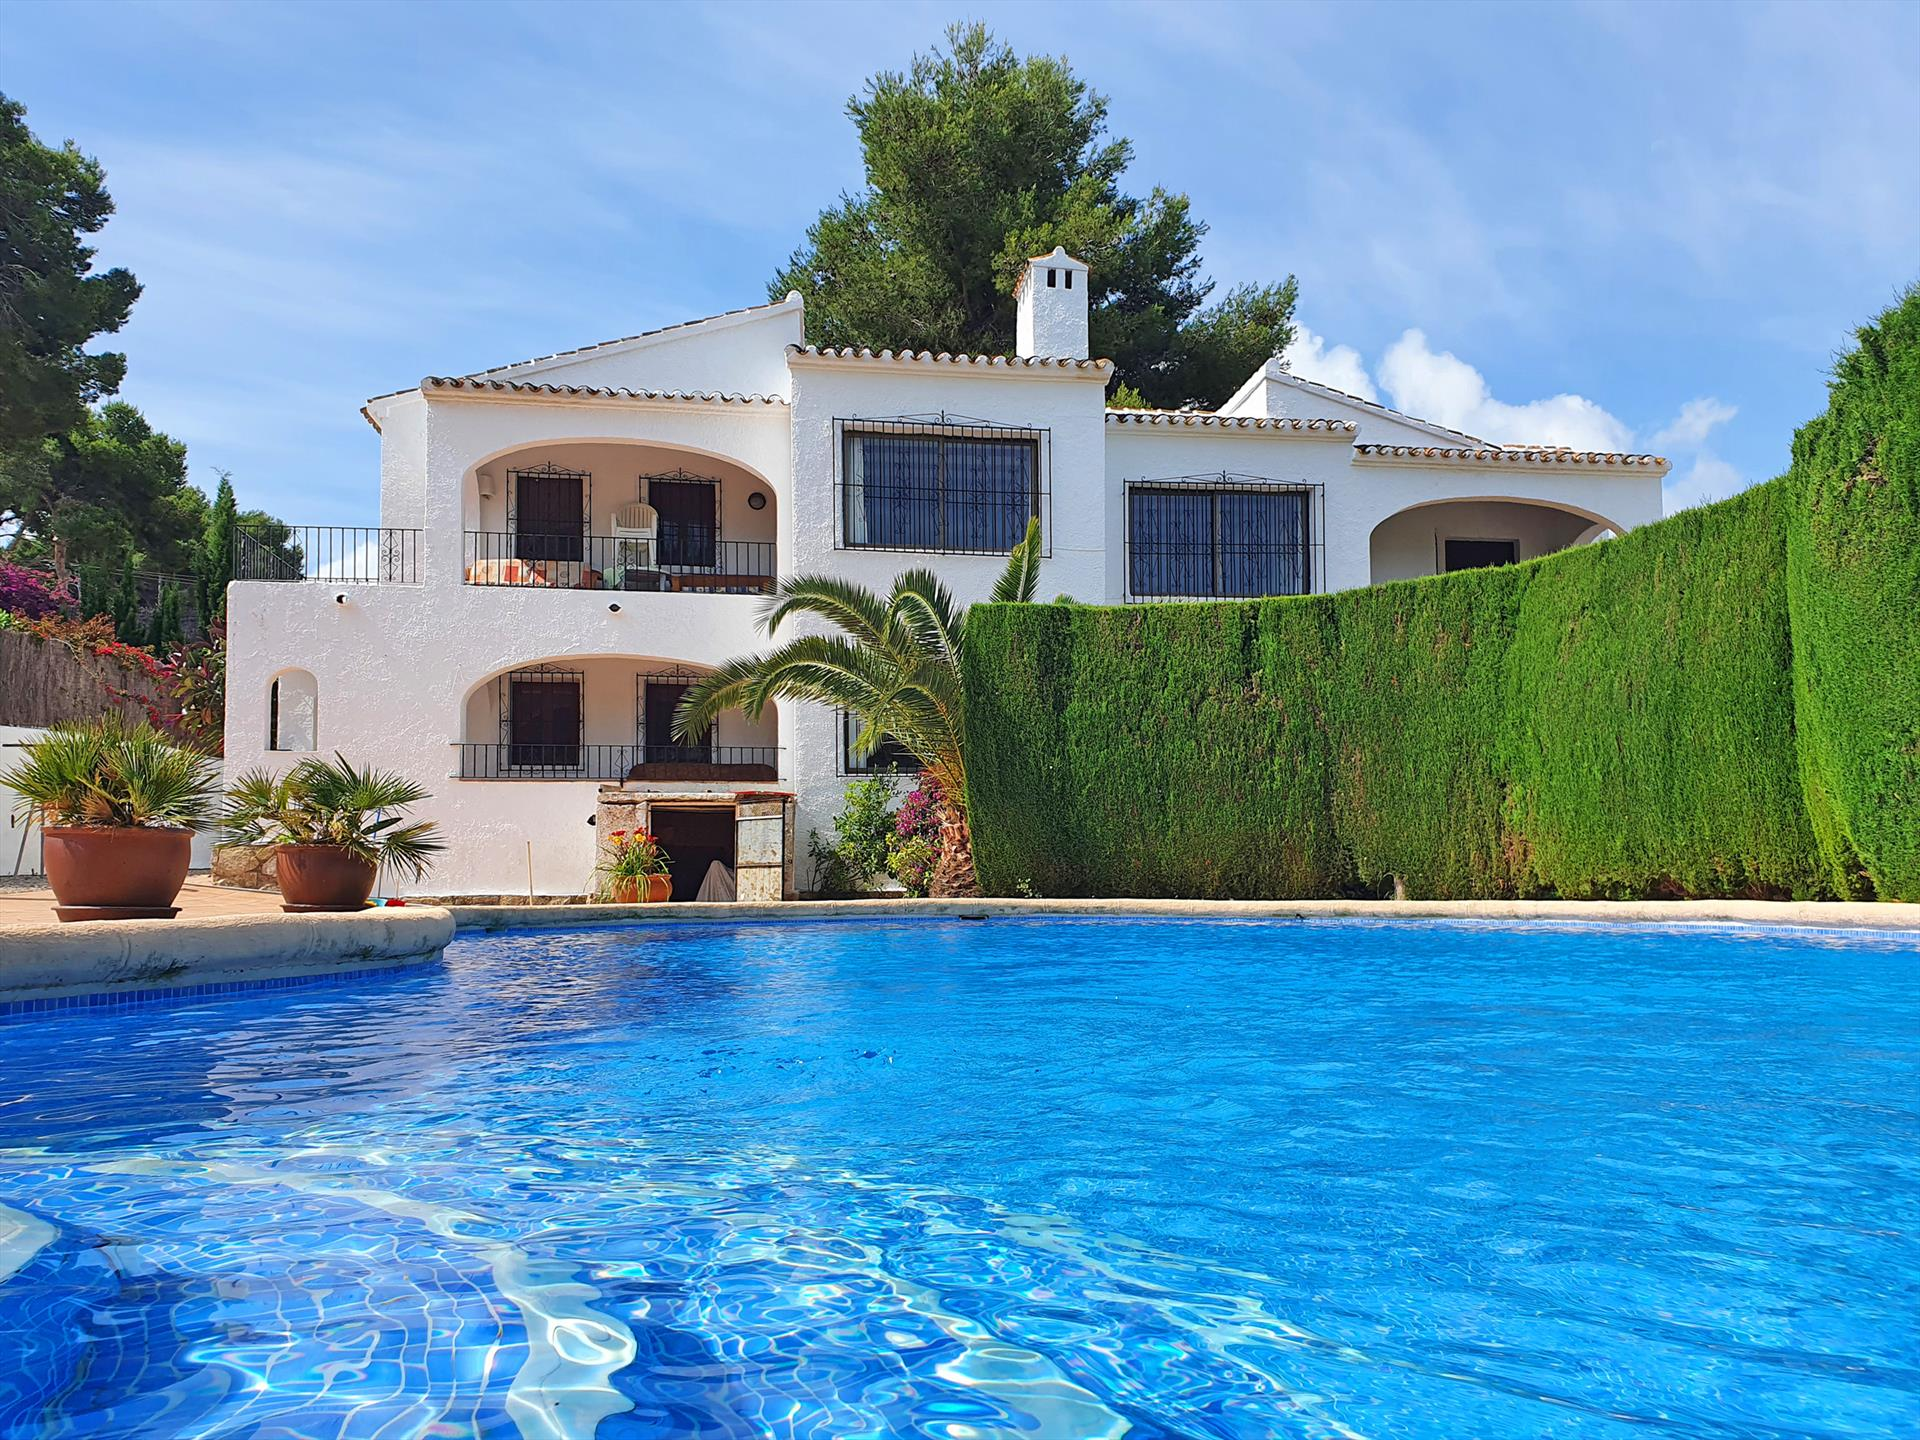 Finca Campo Bello Apartamento D,Finca Campo Bello is a lovely complex in Javea consisting of a total of 5 appartments for 4 or 6 persons each, it has a.....